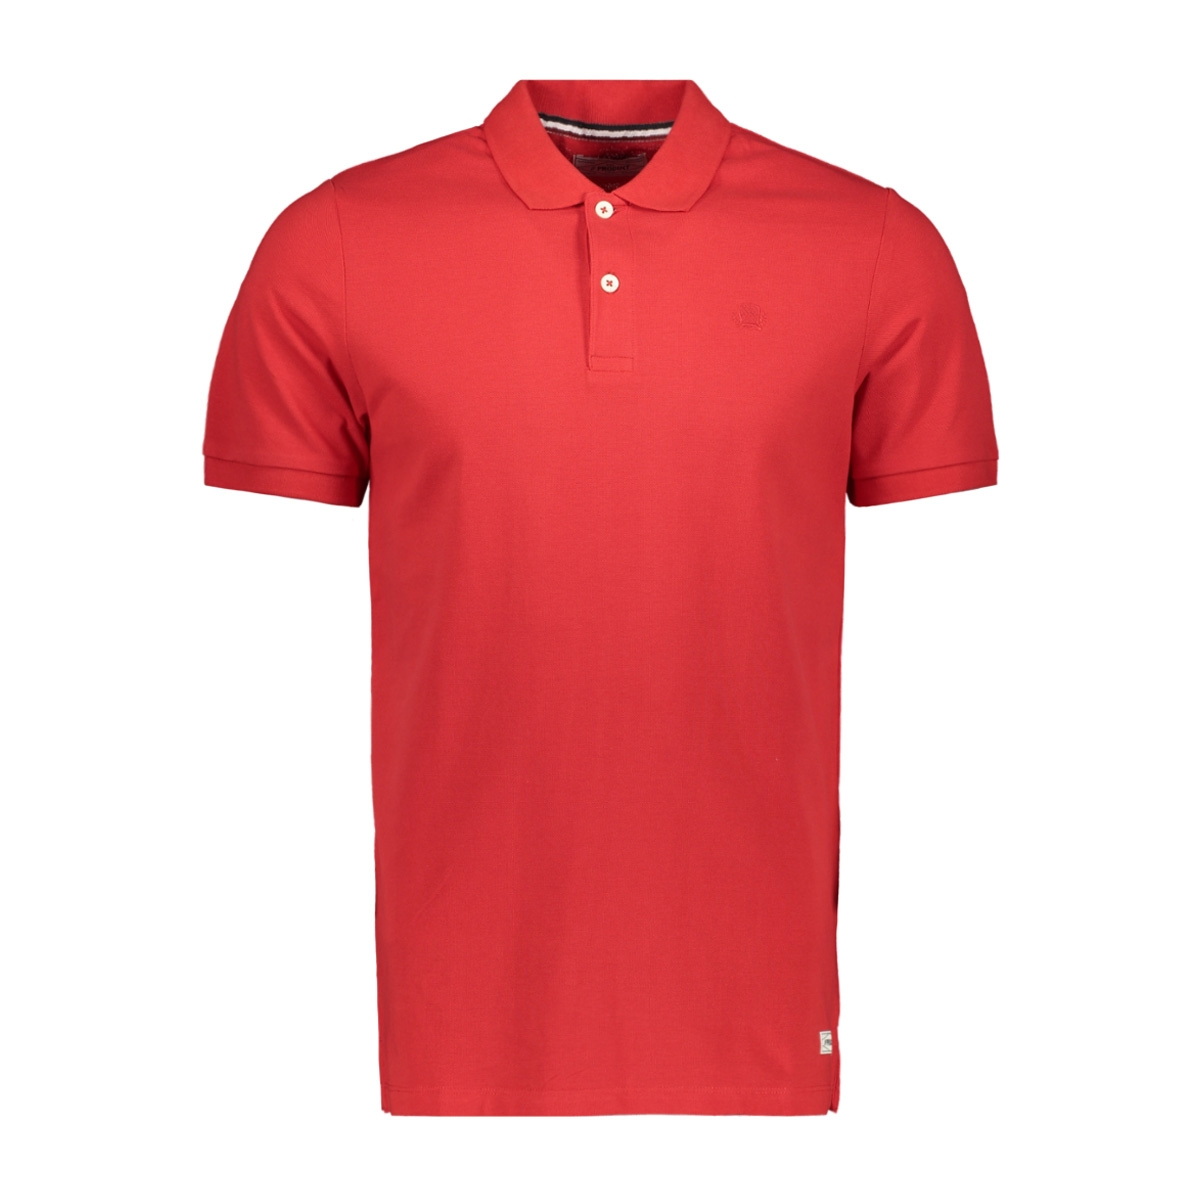 pktgms emb polo s/s 12139201 produkt polo true red